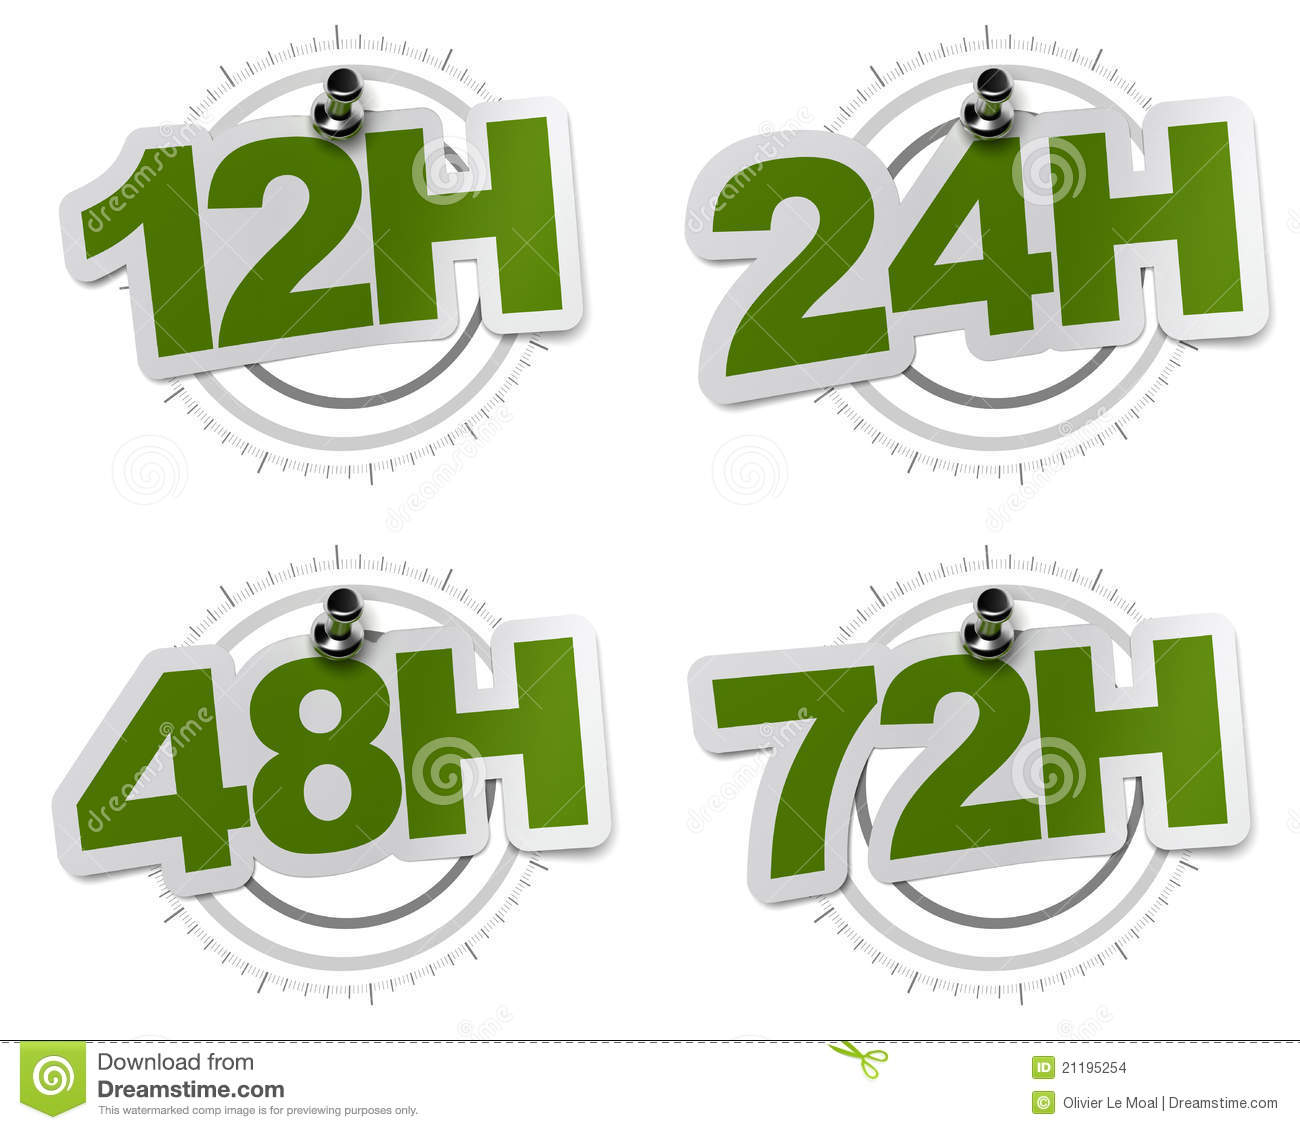 12H, 24H, 48H, 72H green stickers